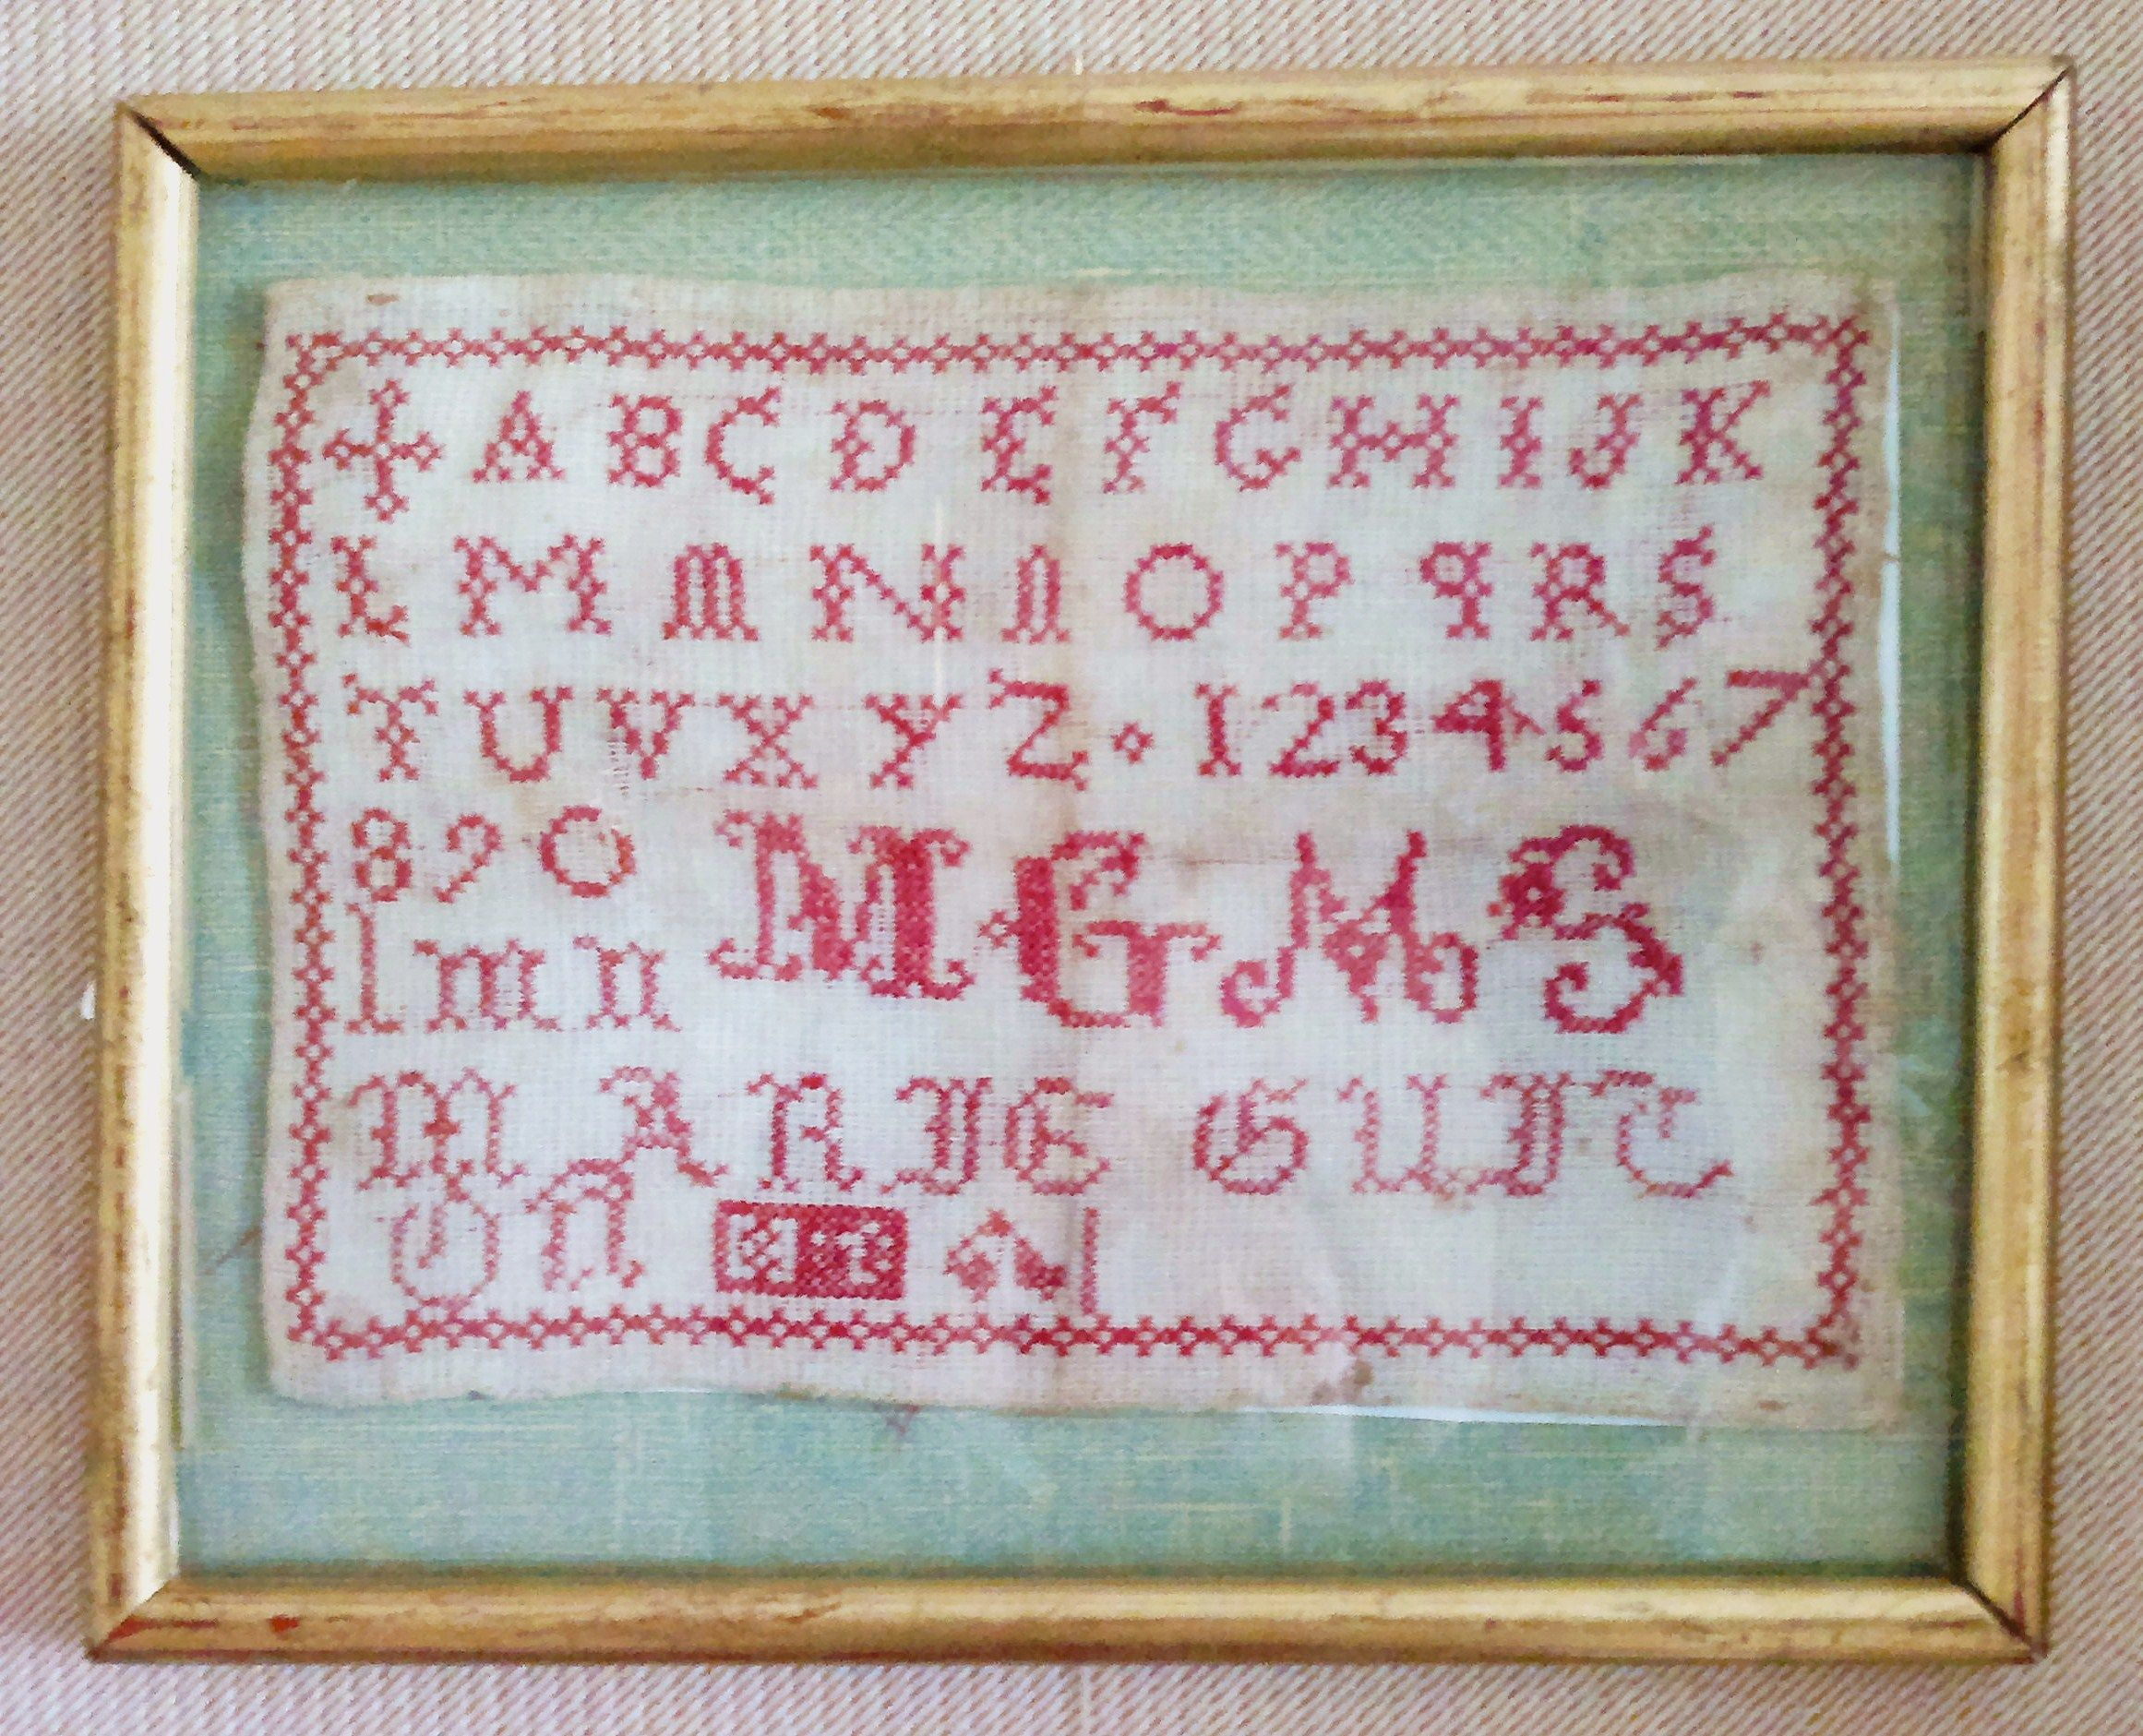 Abécédaire de Marie Guitton (une de mes arrière-grand-mères), 8 ans - 1898 - Tours - France. Cross stitch sampler made by one of my grand-grand mothers as a school work, at the age of 8, in 1898. Town of Tours - France.